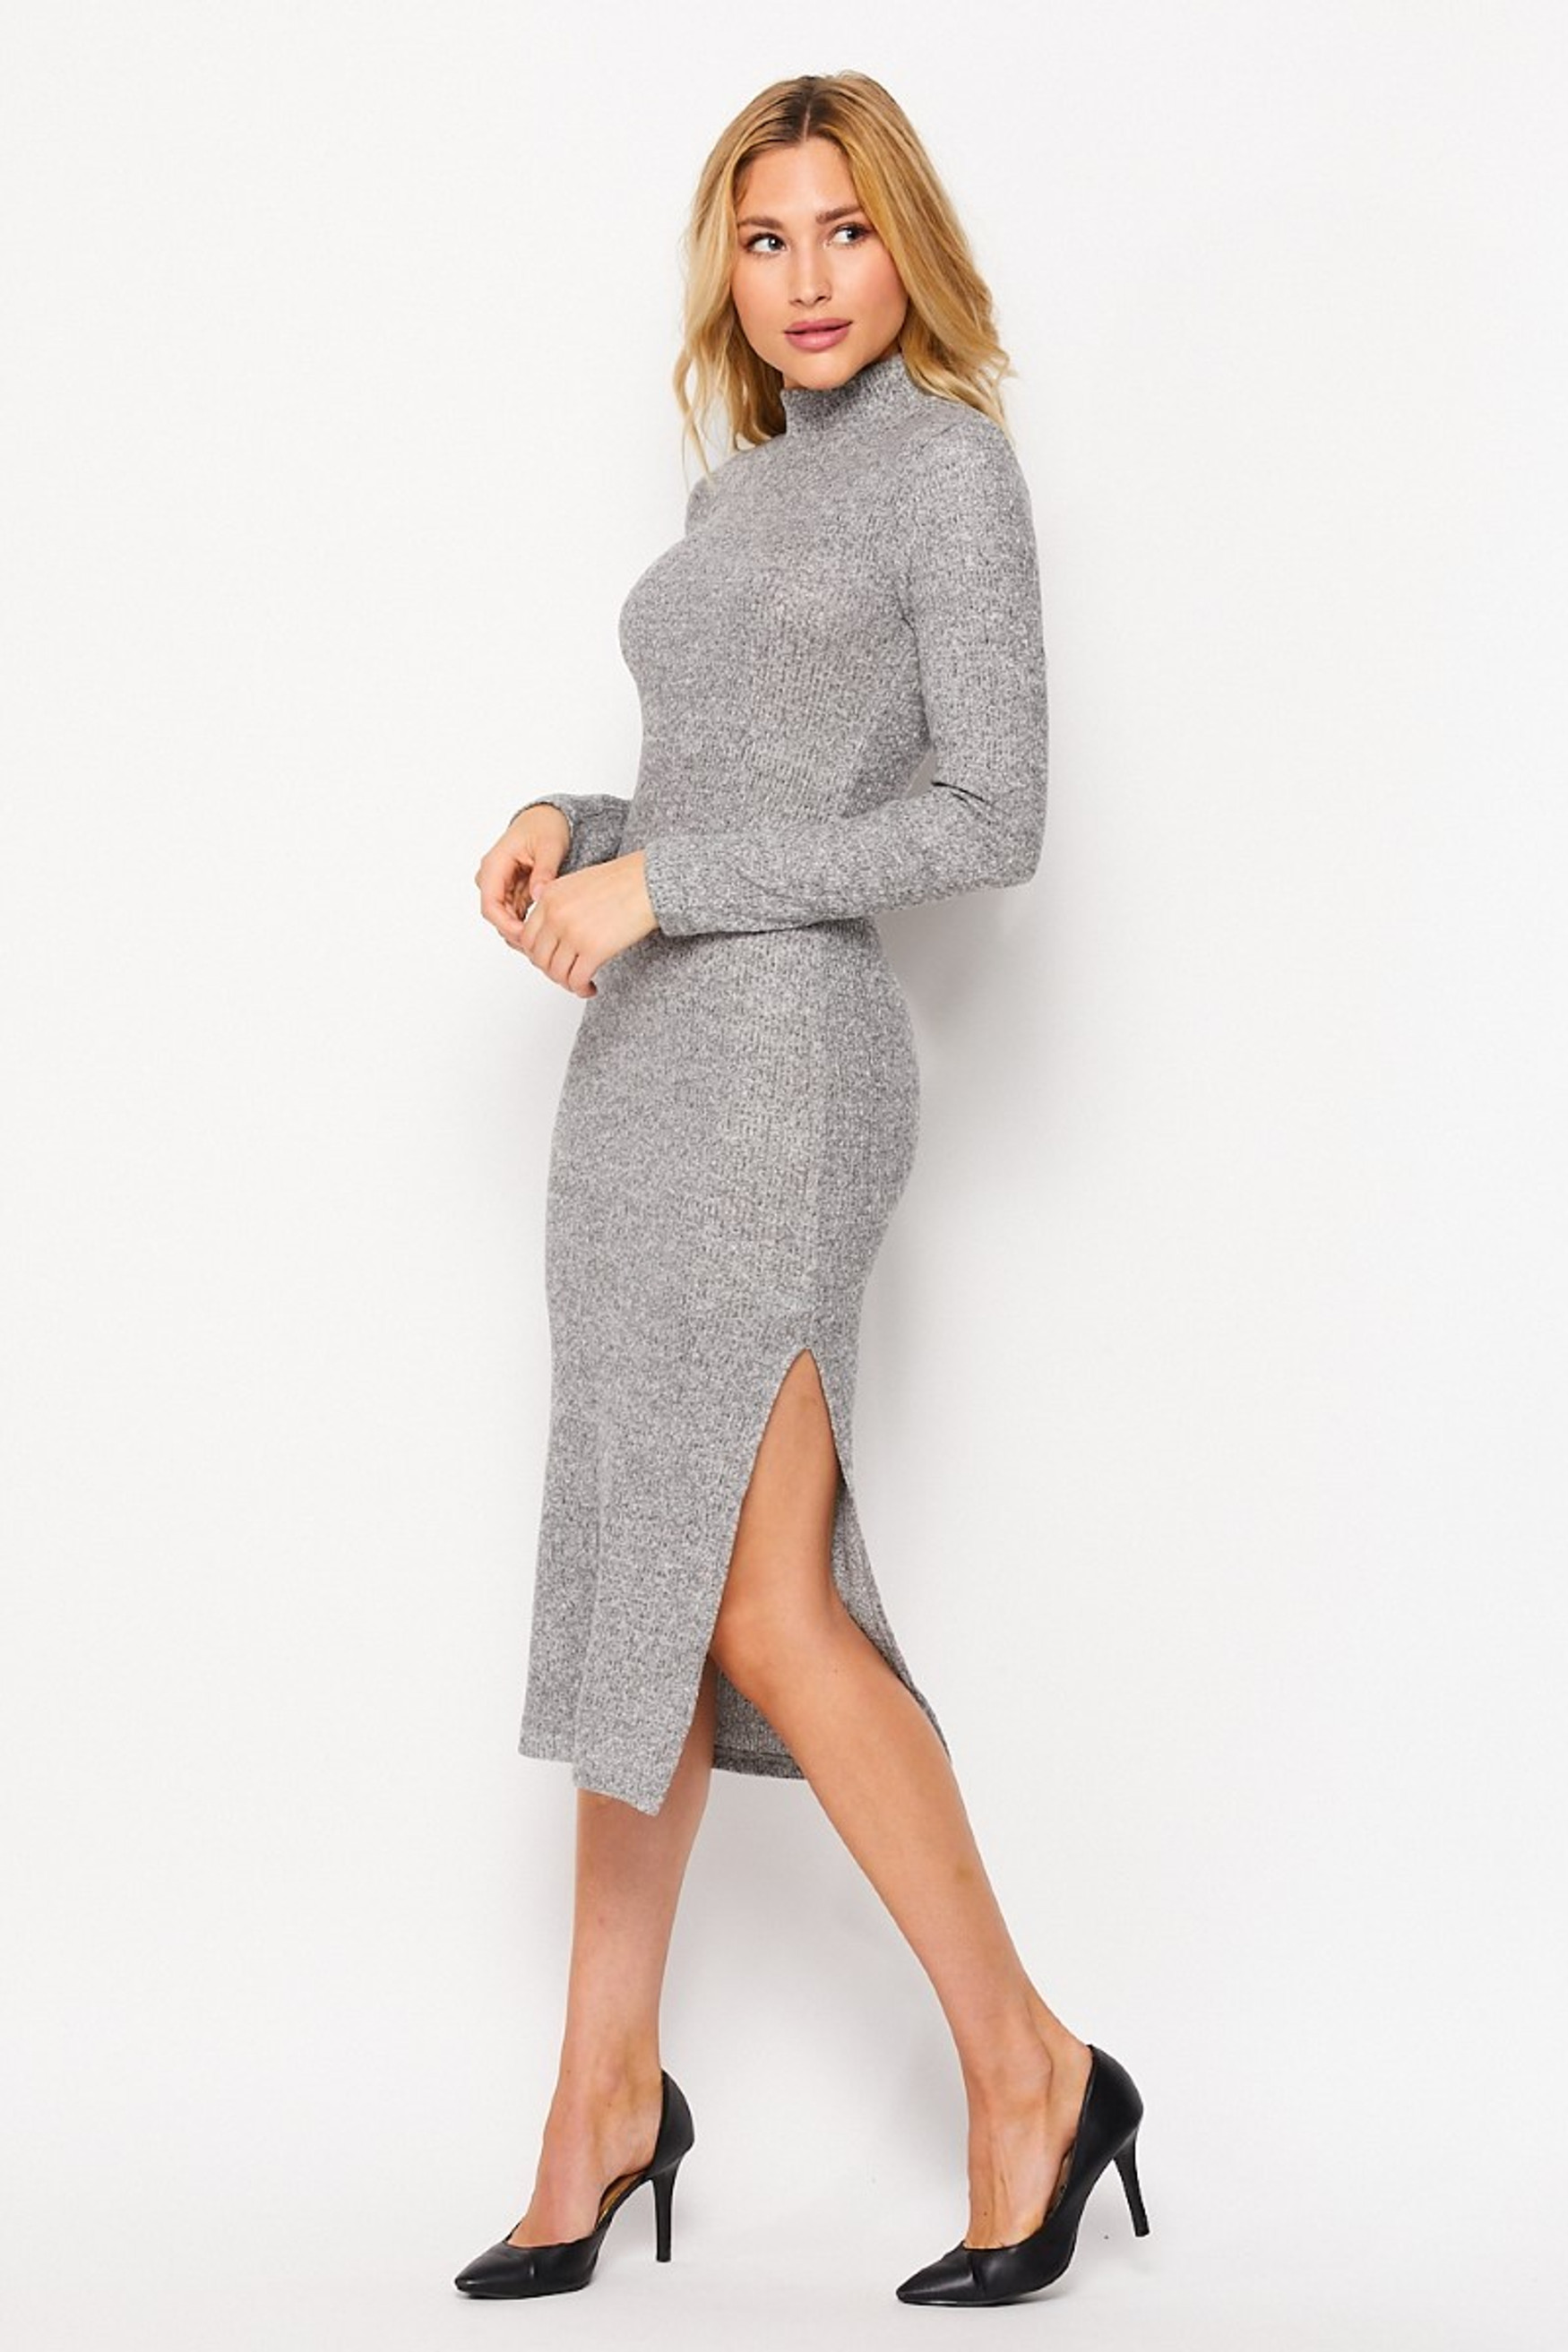 Left side image of Heather Gray  Solid Fitted Rayon Mock Neck Long Sleeve Side Slit Midi Dress